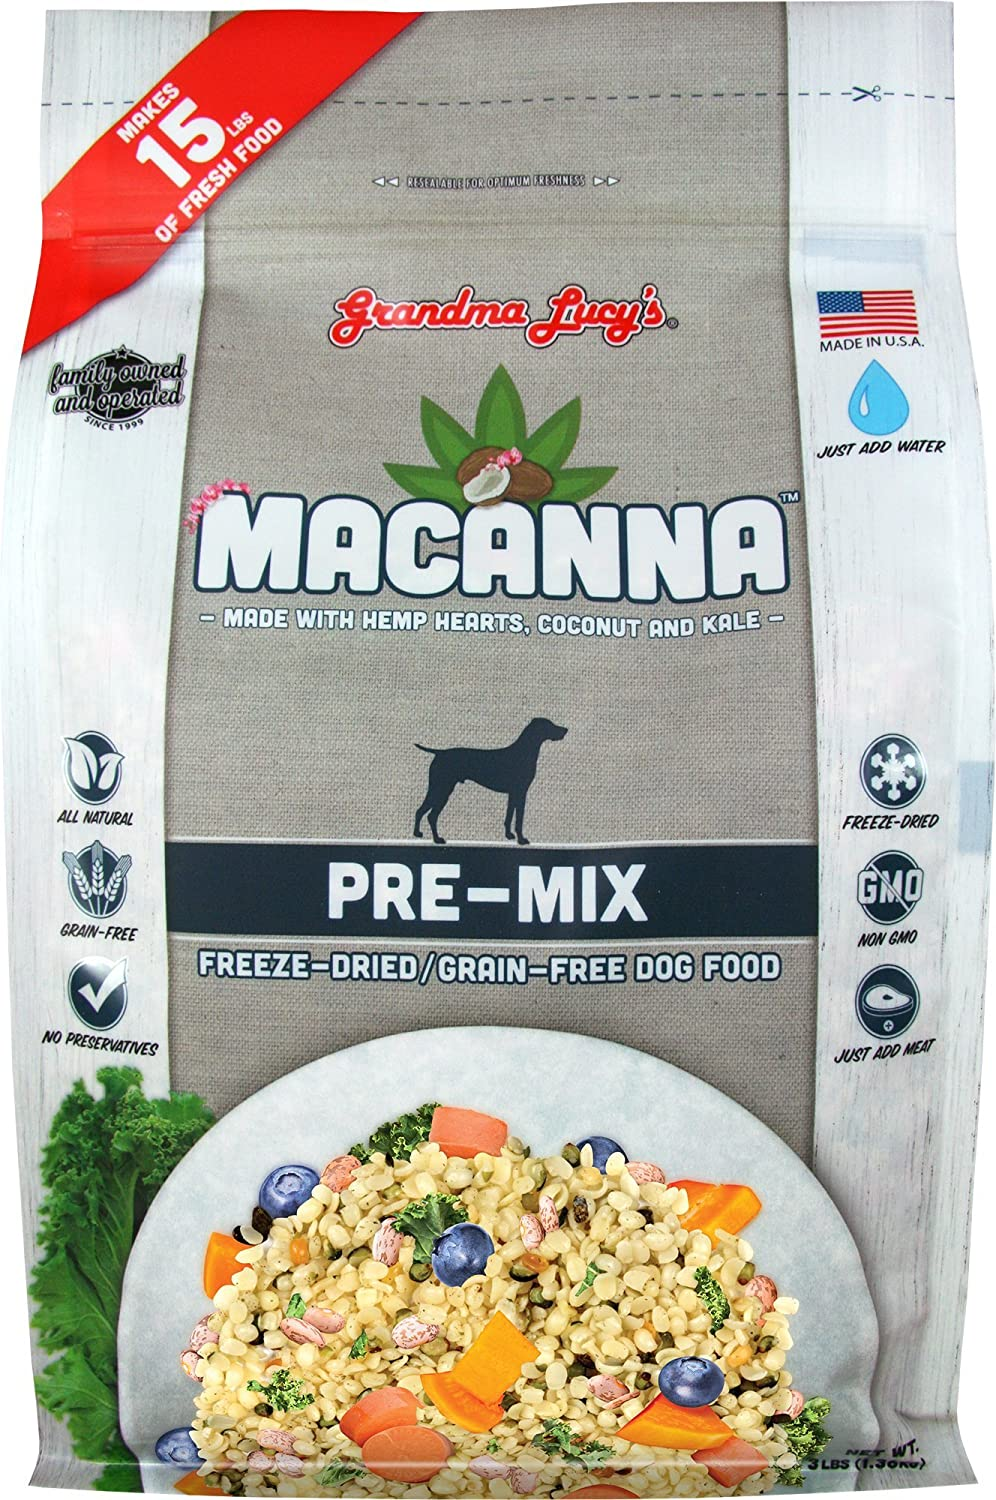 Grandma Lucy's Macanna Dog Food, Grain Free and Freeze-Dried - Pre-Mix, 3Lb Bag